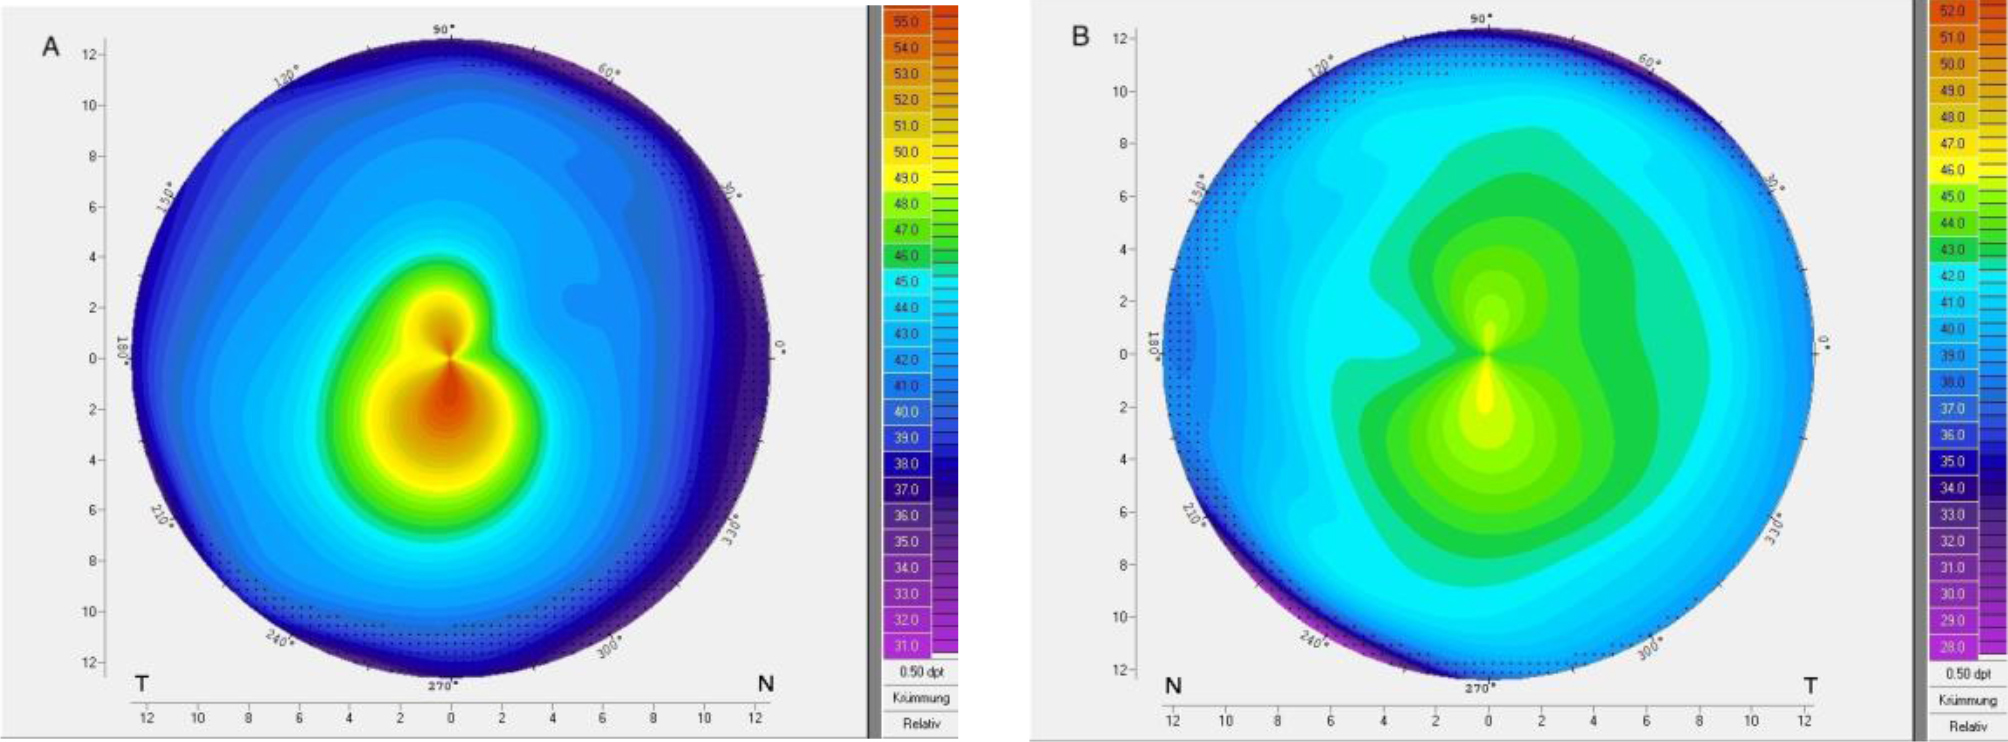 Corneal topography of patient 10 with very asymmetric keratoconus showing (A) ectasia and (B) regular topography in the fellow eye.